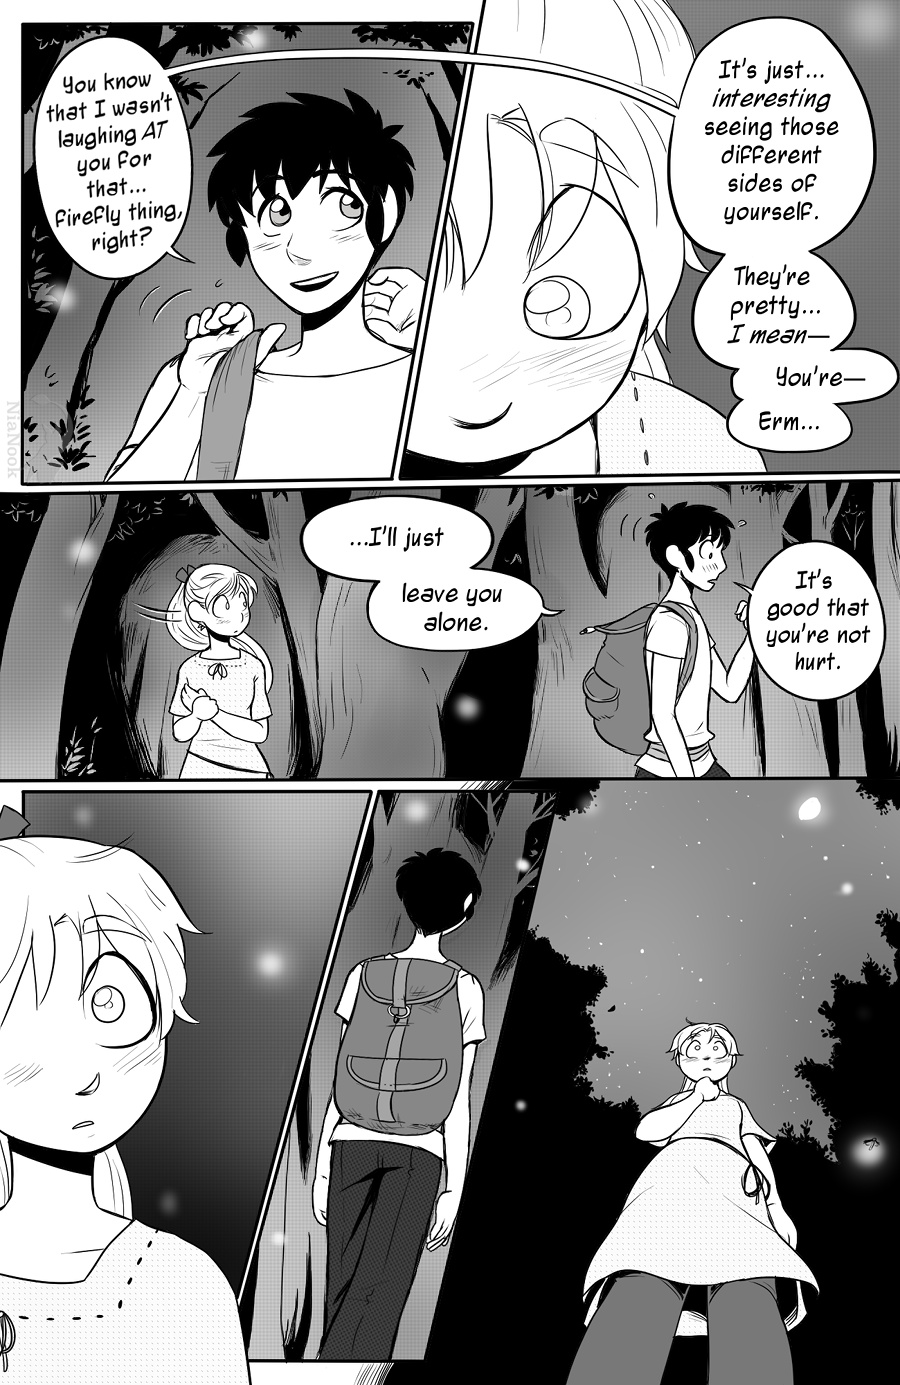 Page 18 (Book 4)